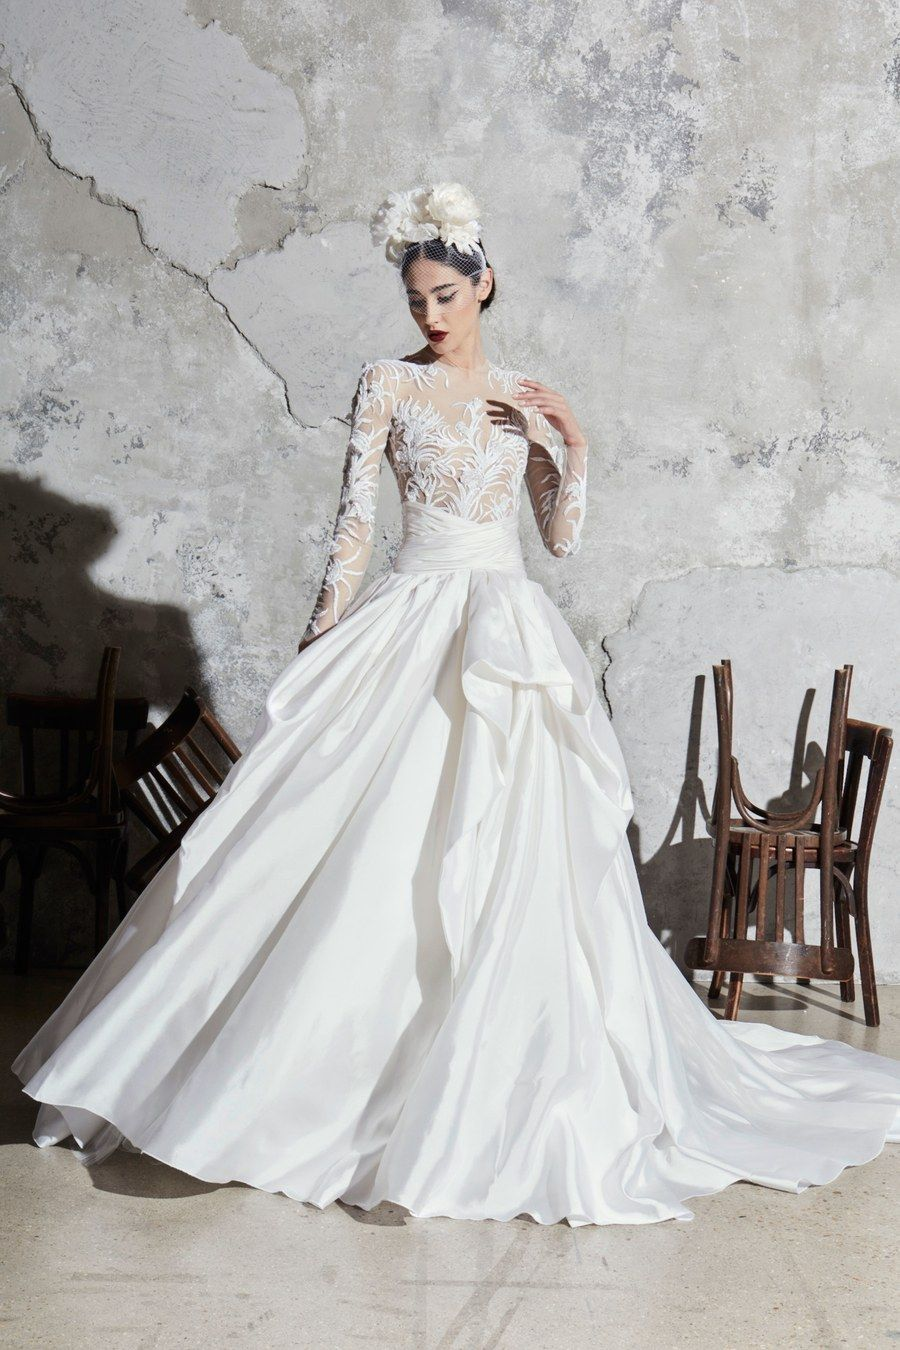 Zuhair Murad Bridal Spring 2020 collection, runway looks, beauty, models, and re... -  Zuhair Murad